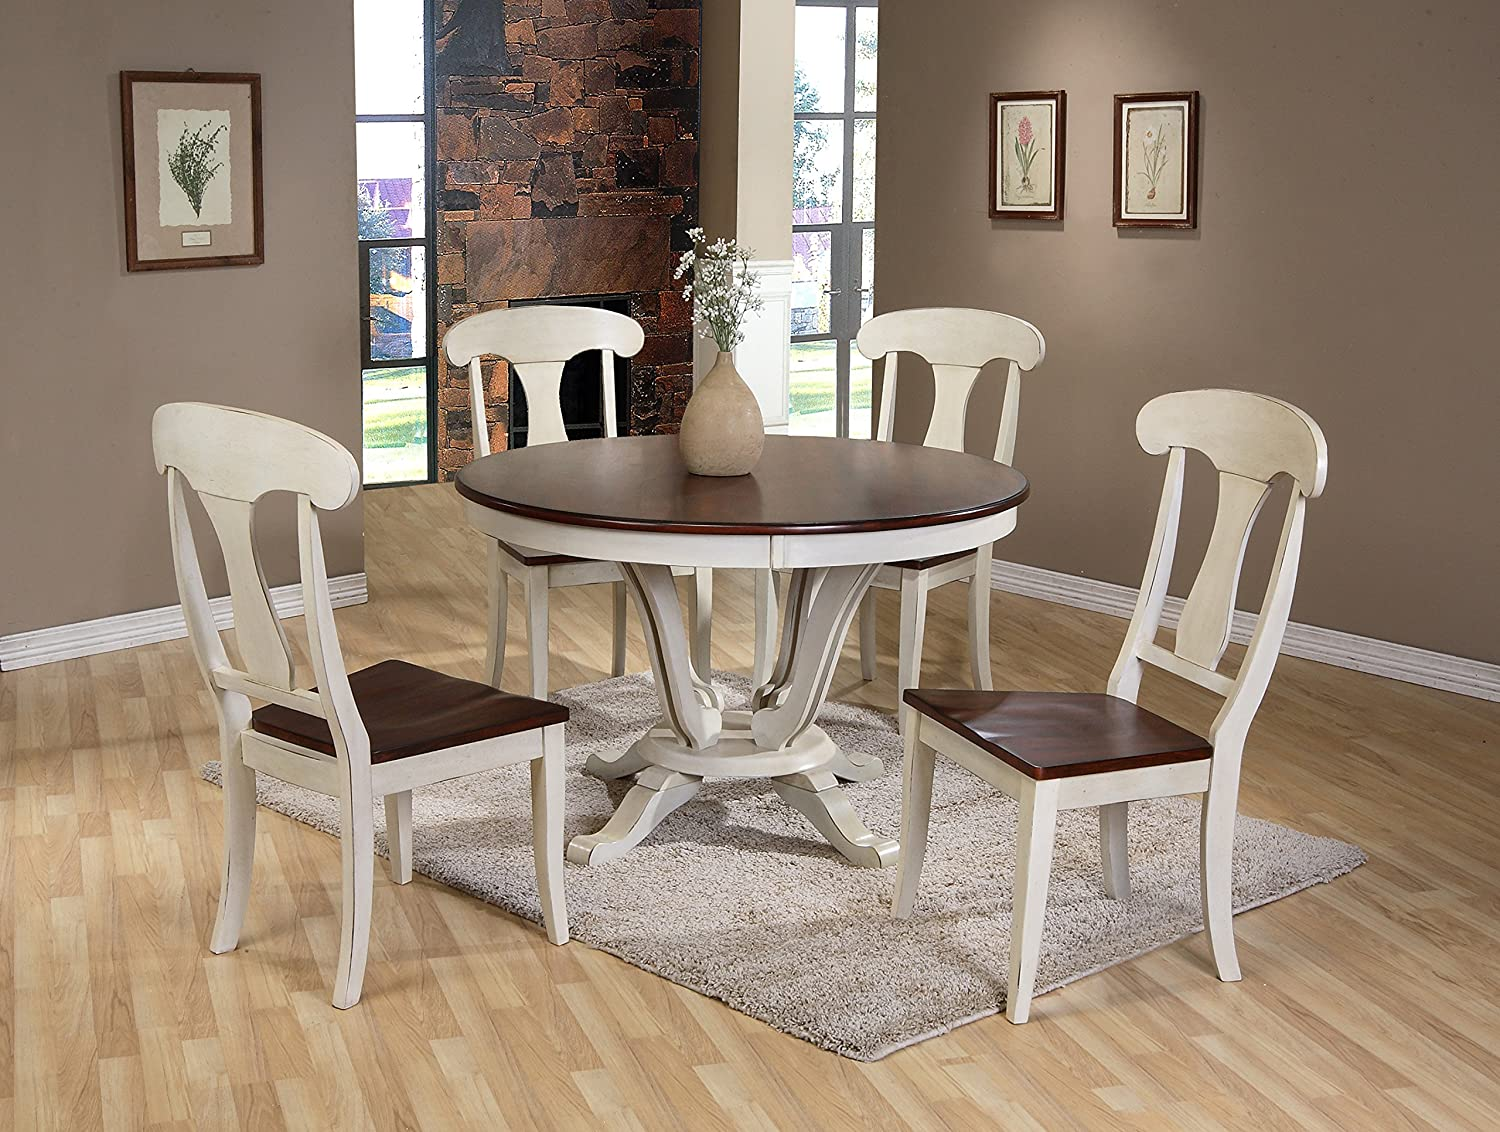 Amazon Com Baxton Studio Napoleon Chic Country Cottage Antique Oak Wood And Distressed White 5 Piece Dining Set With 48 Inch Round Pedestal Base Fixed Top Dining Table Table Chair Sets